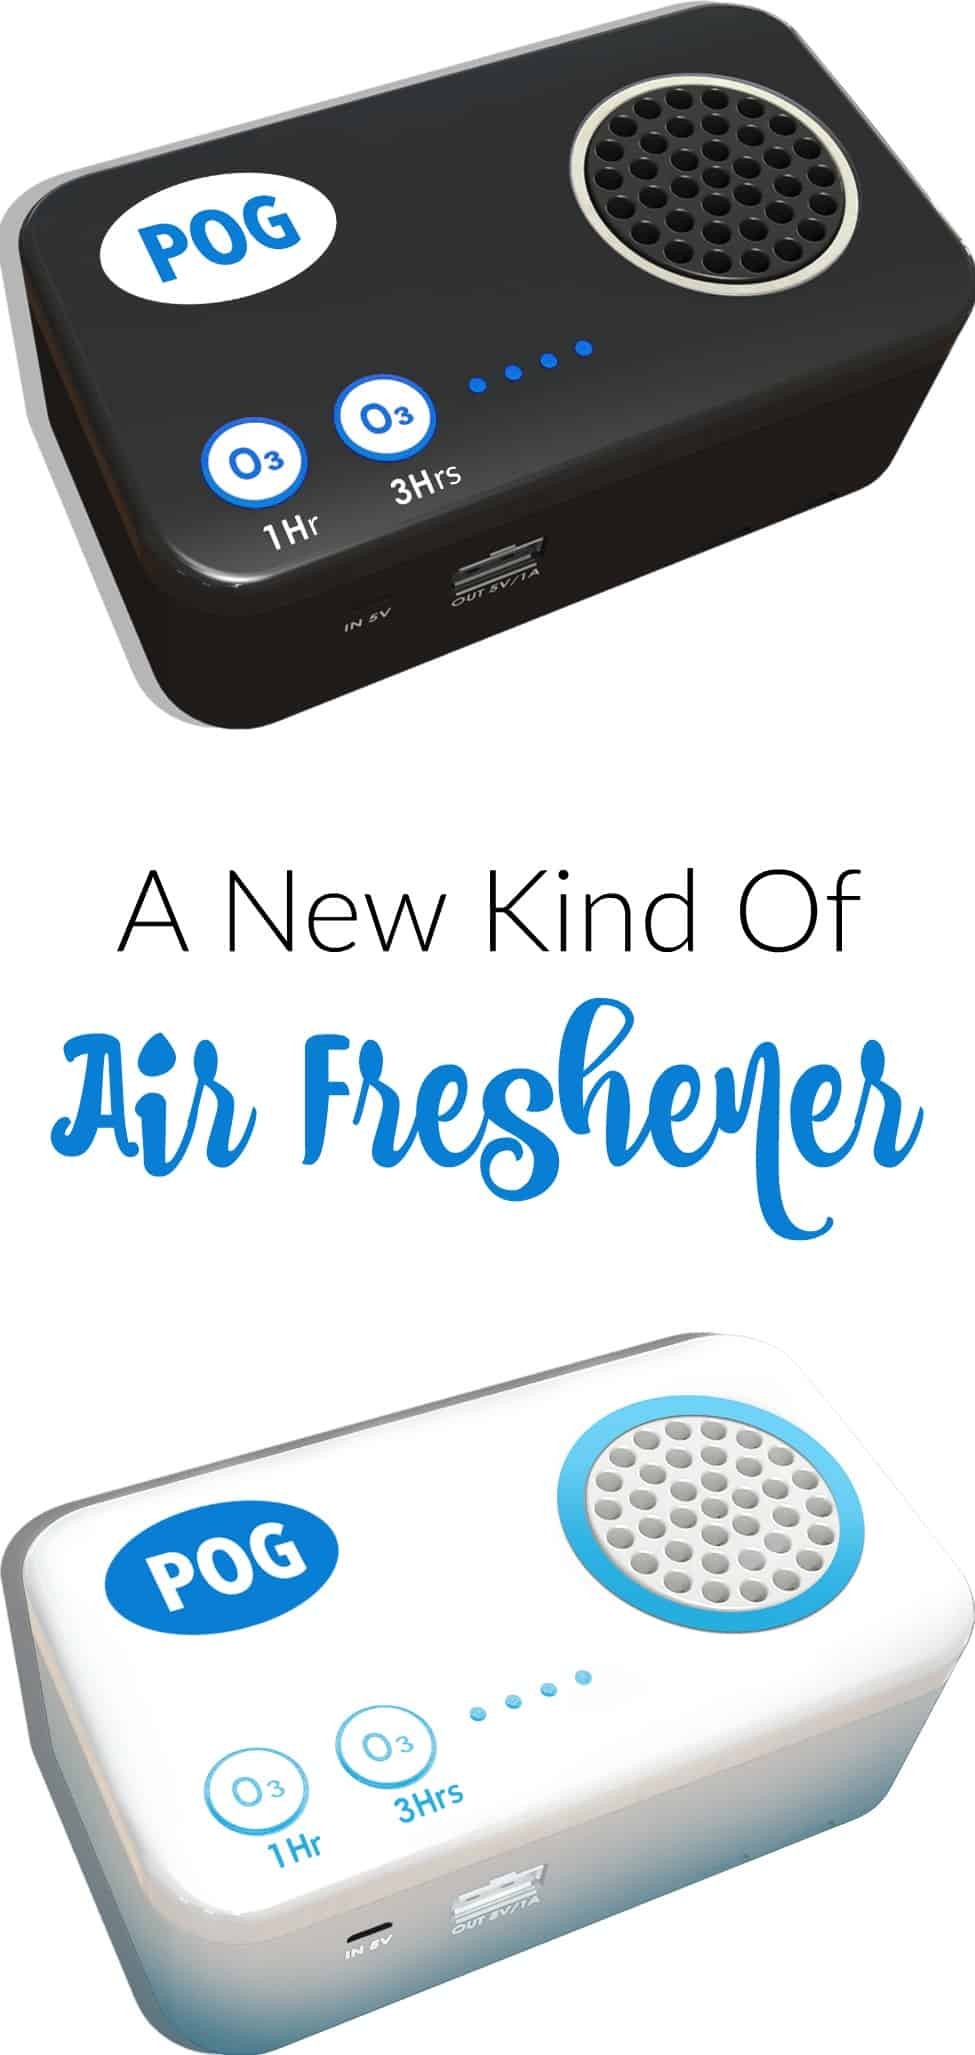 A new kind of air freshener